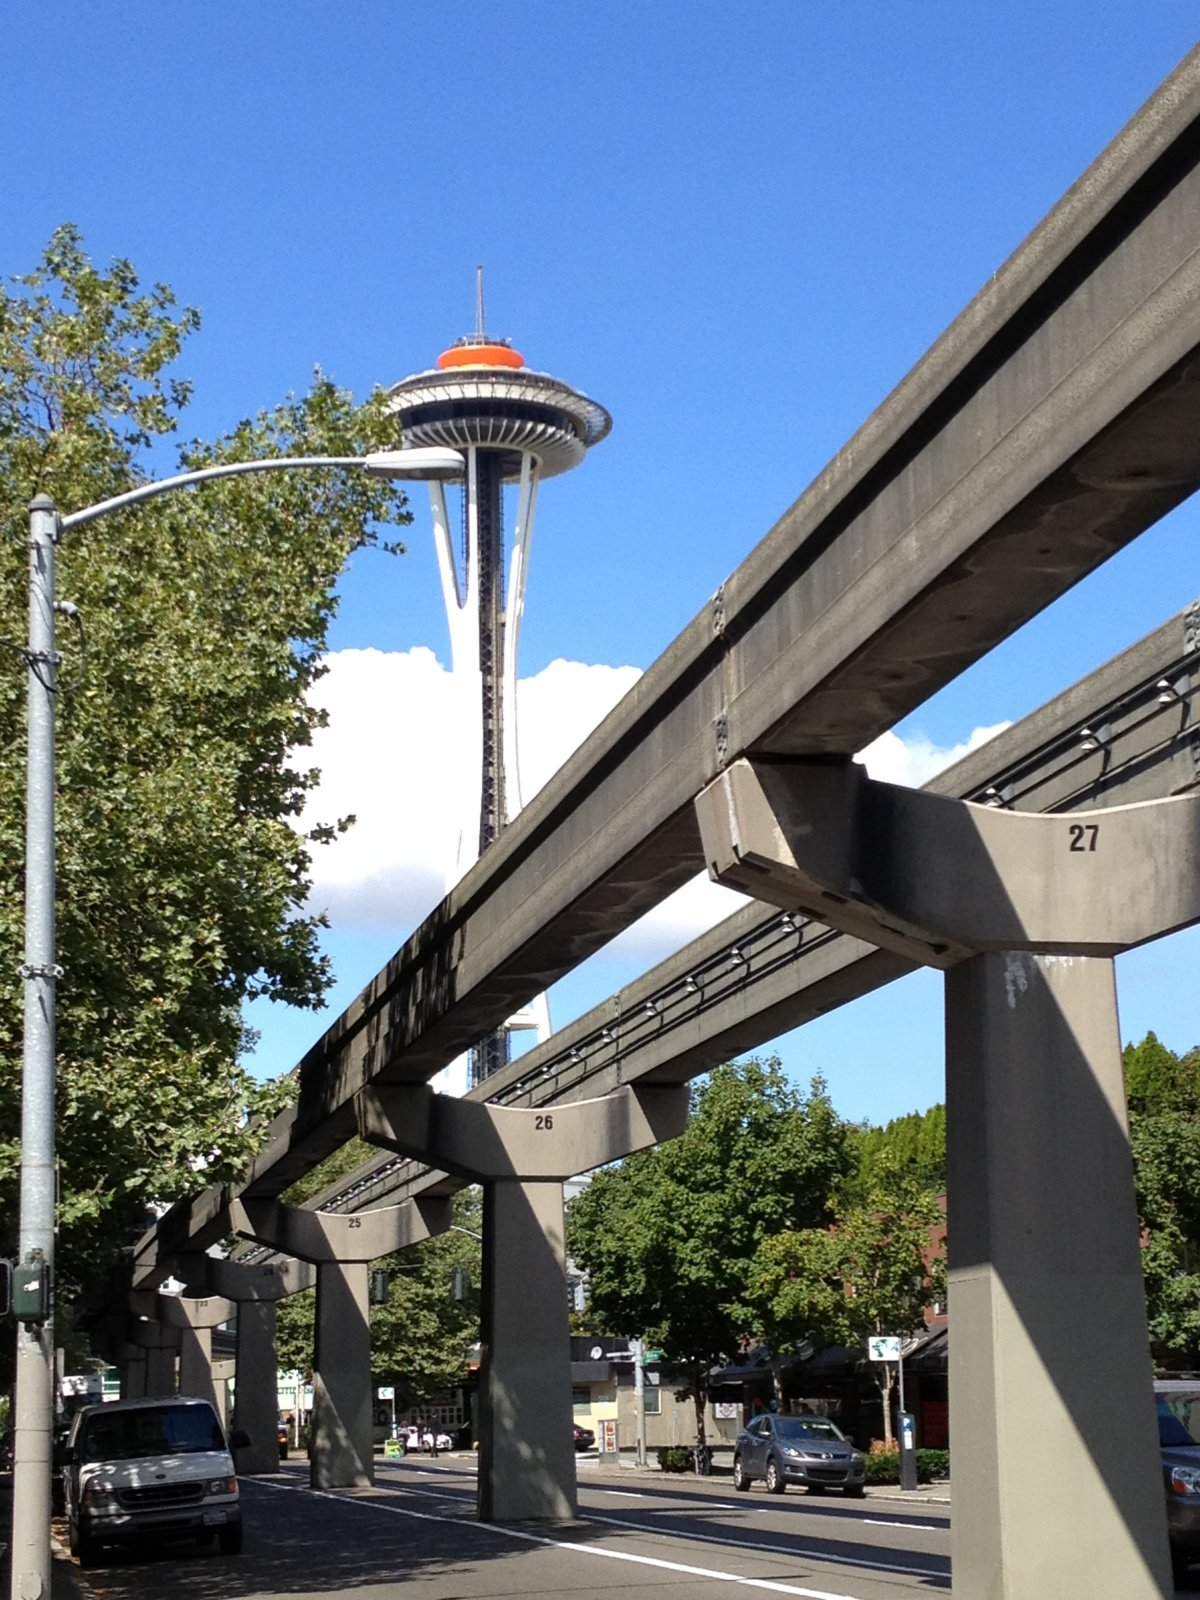 Click image for larger version  Name:Seattle 201.jpg Views:59 Size:371.9 KB ID:167146